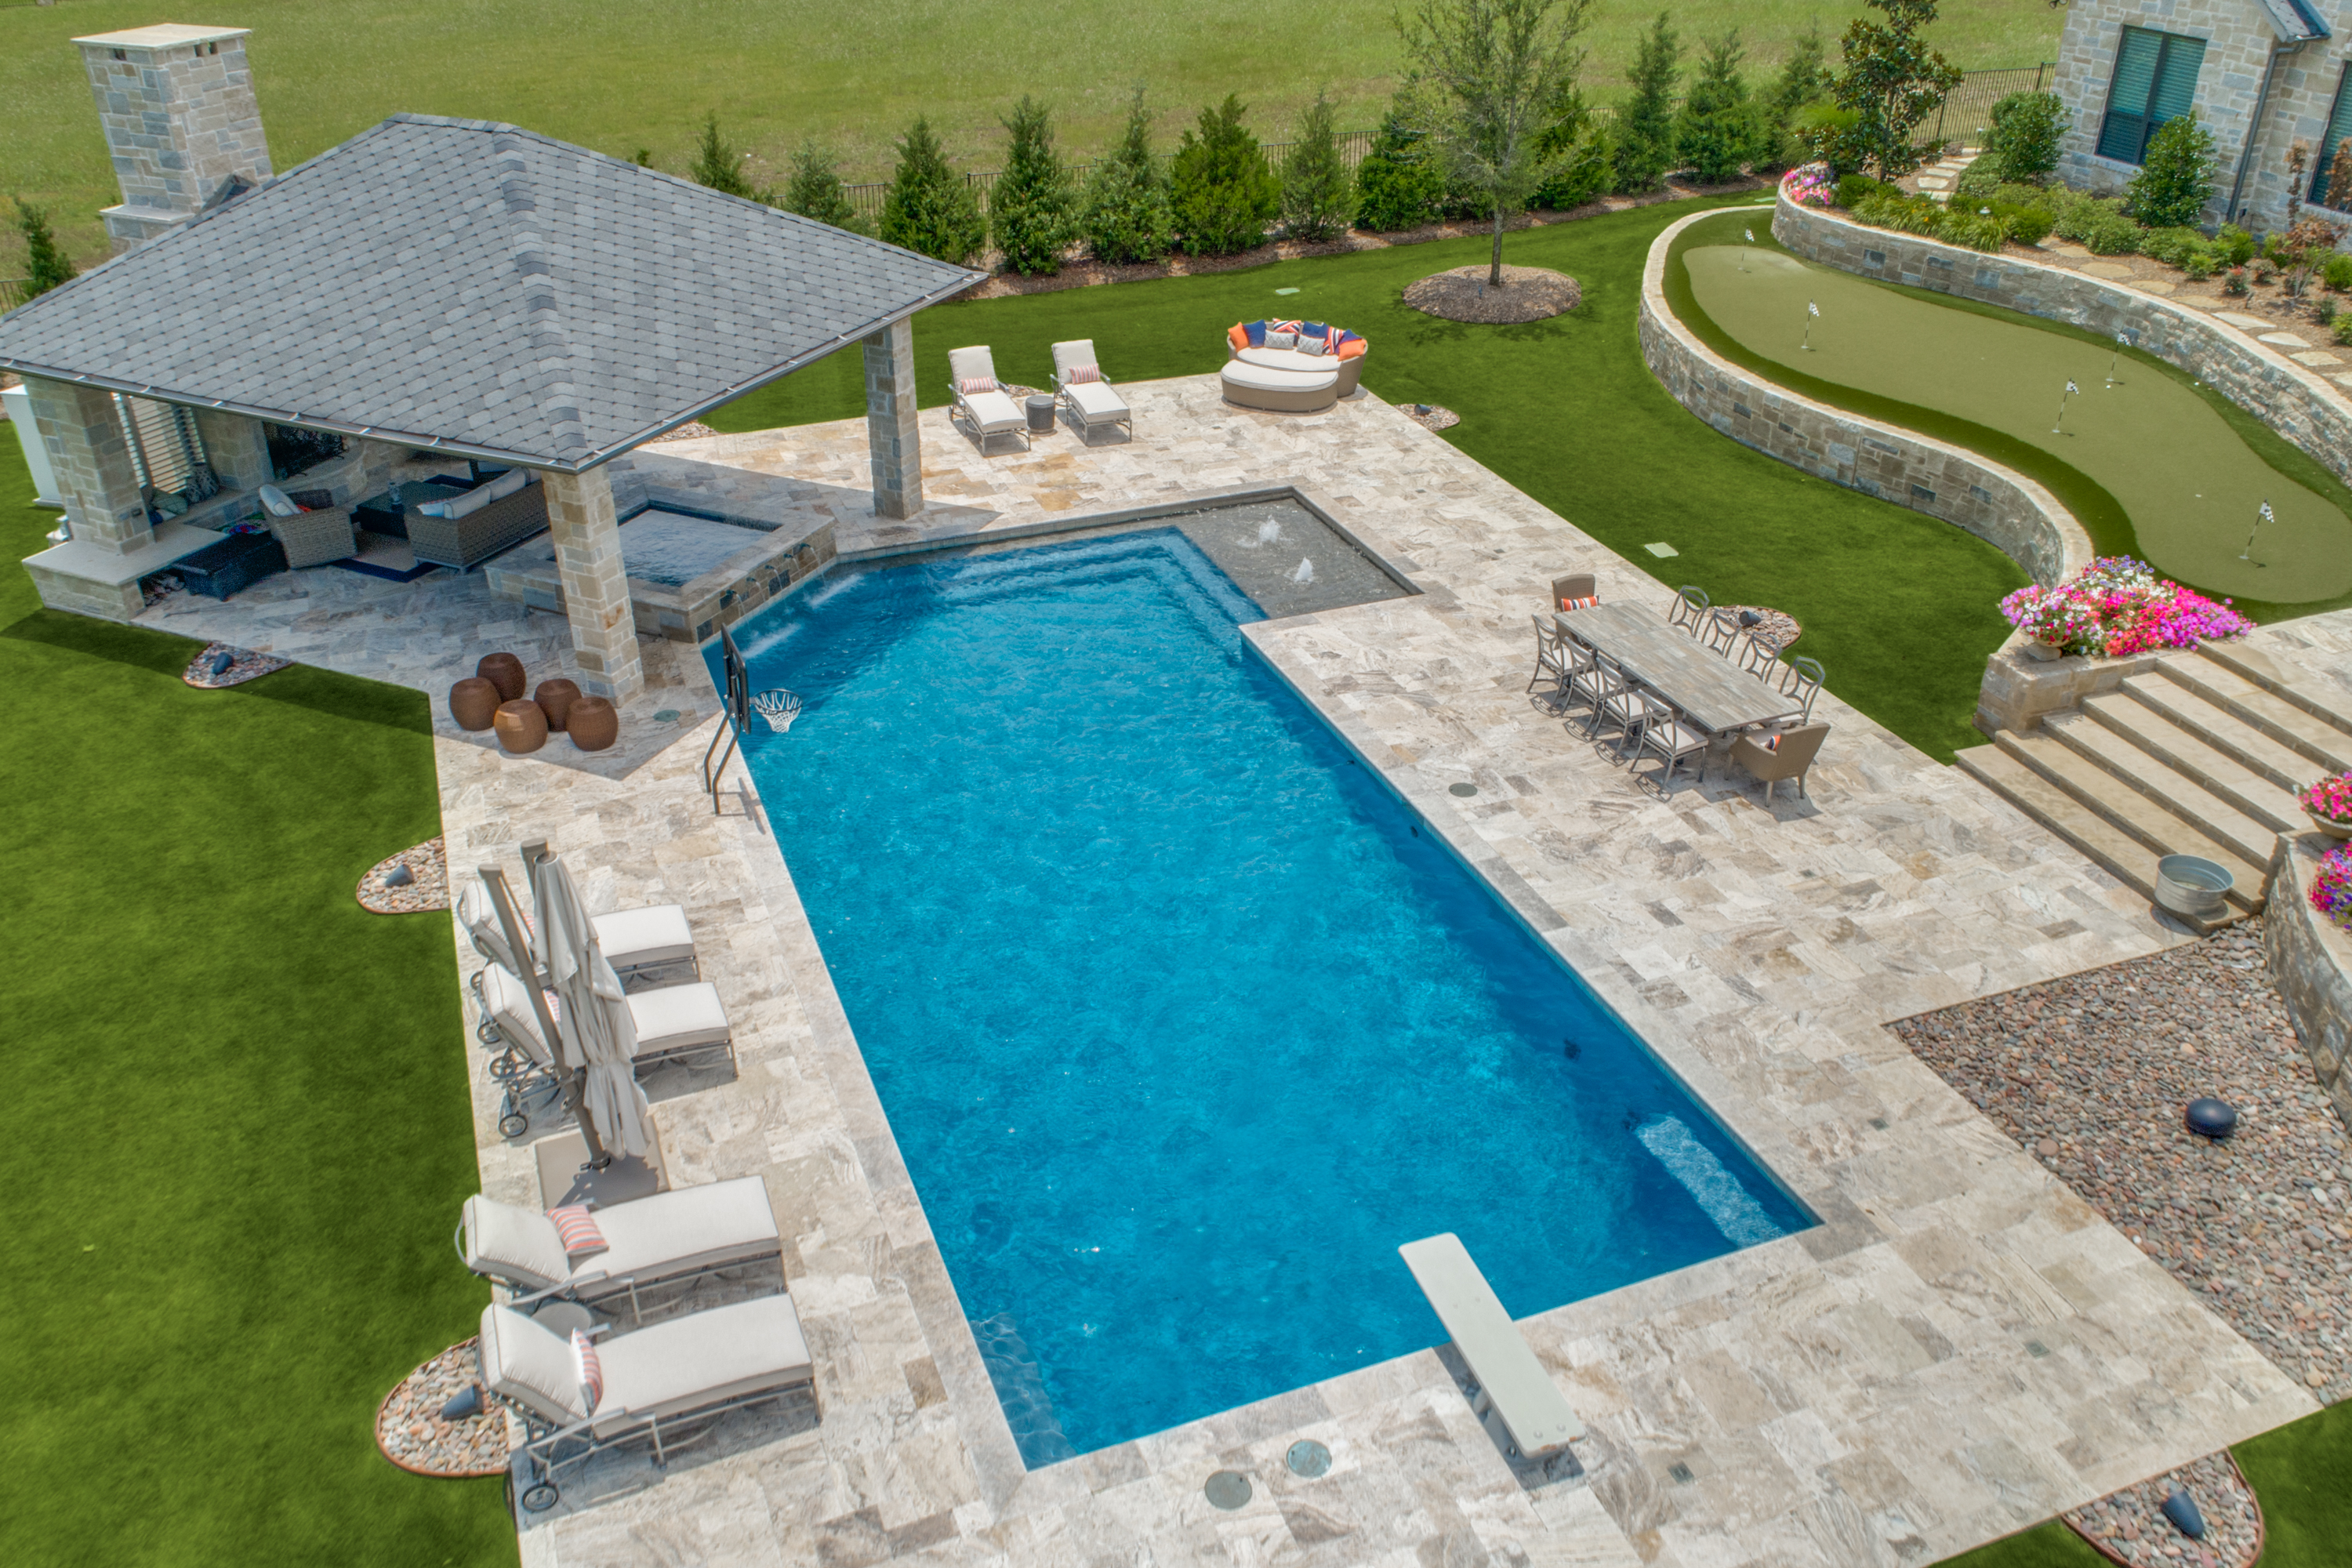 Gold_Medal_Pools-Residential_Pool_Straight_Line_Style-Prosper-TX-13